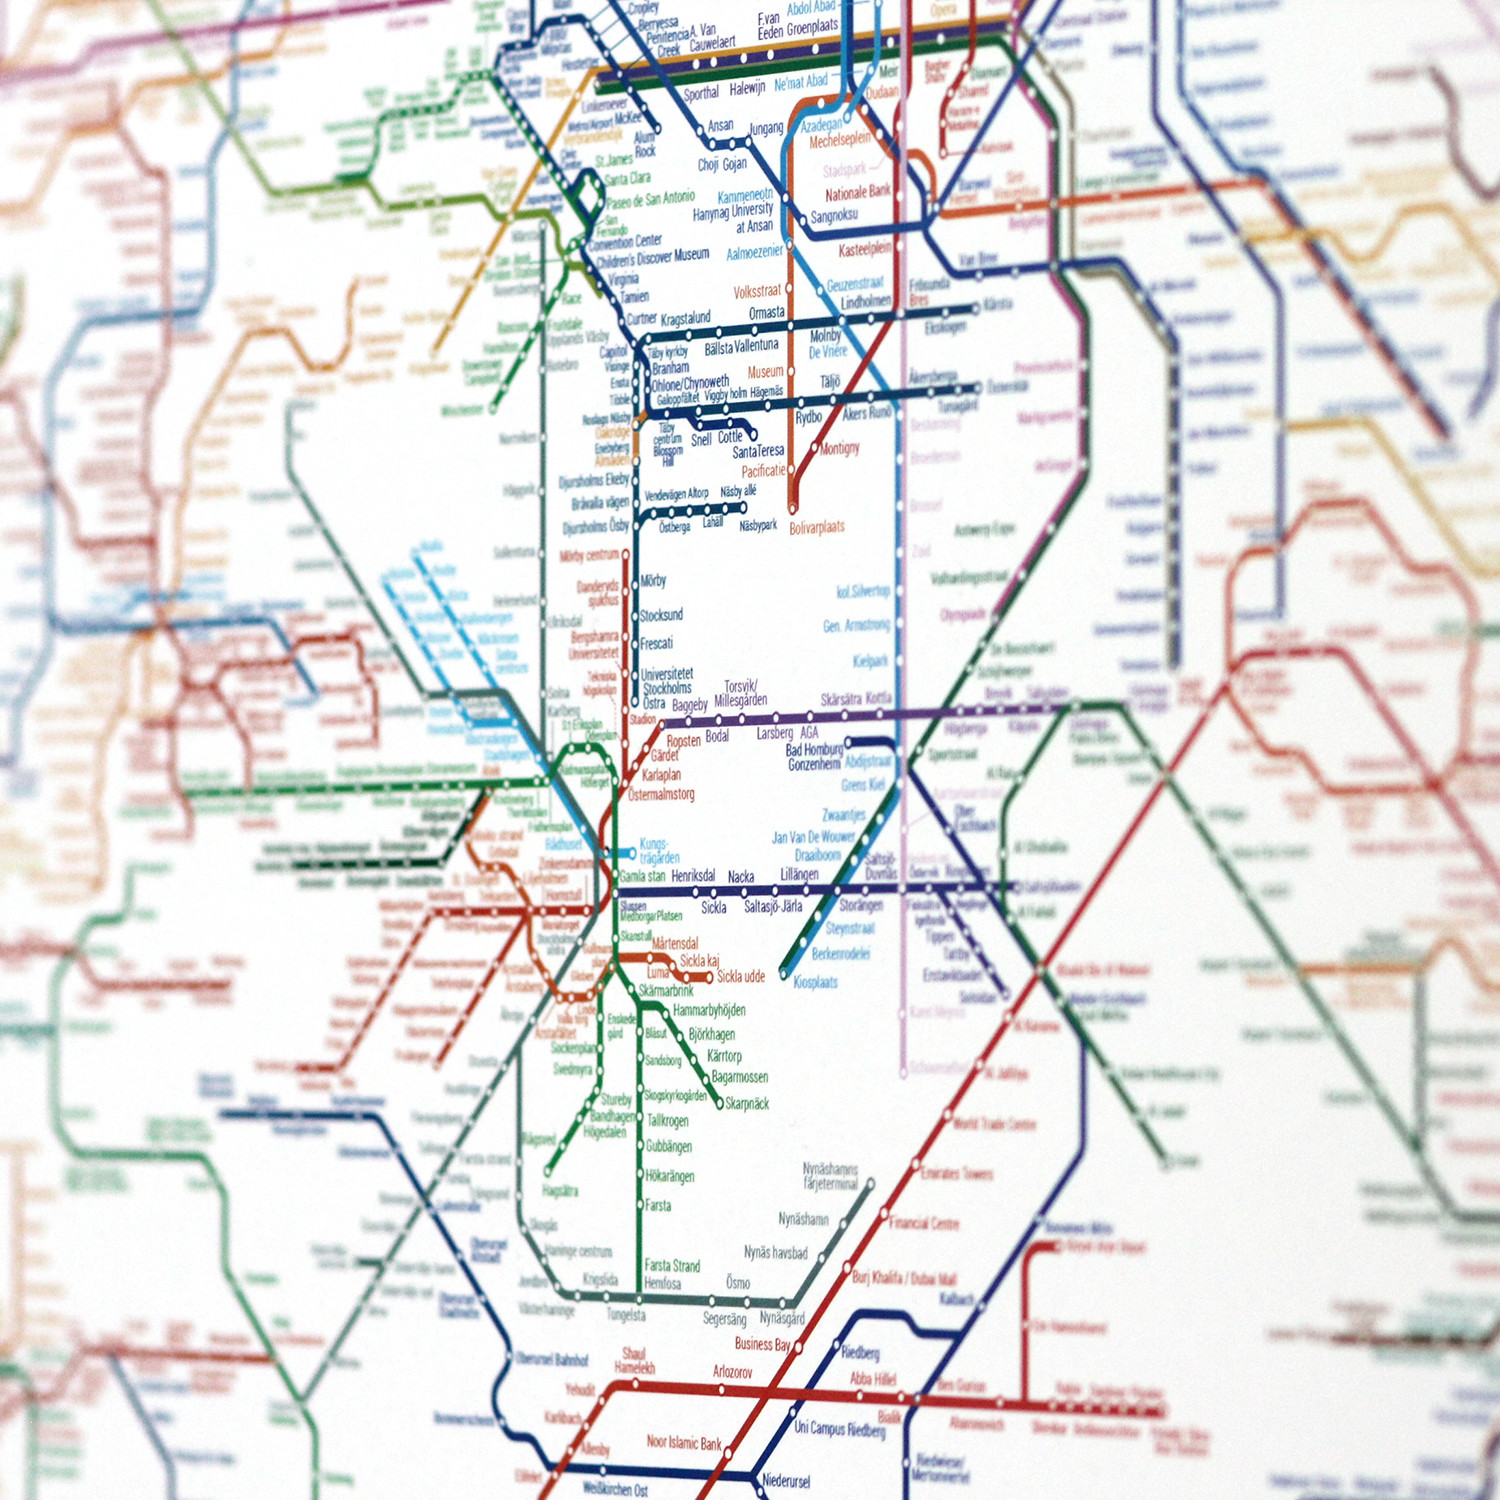 World metro map small artcodedata touch of modern world metro map small gumiabroncs Choice Image